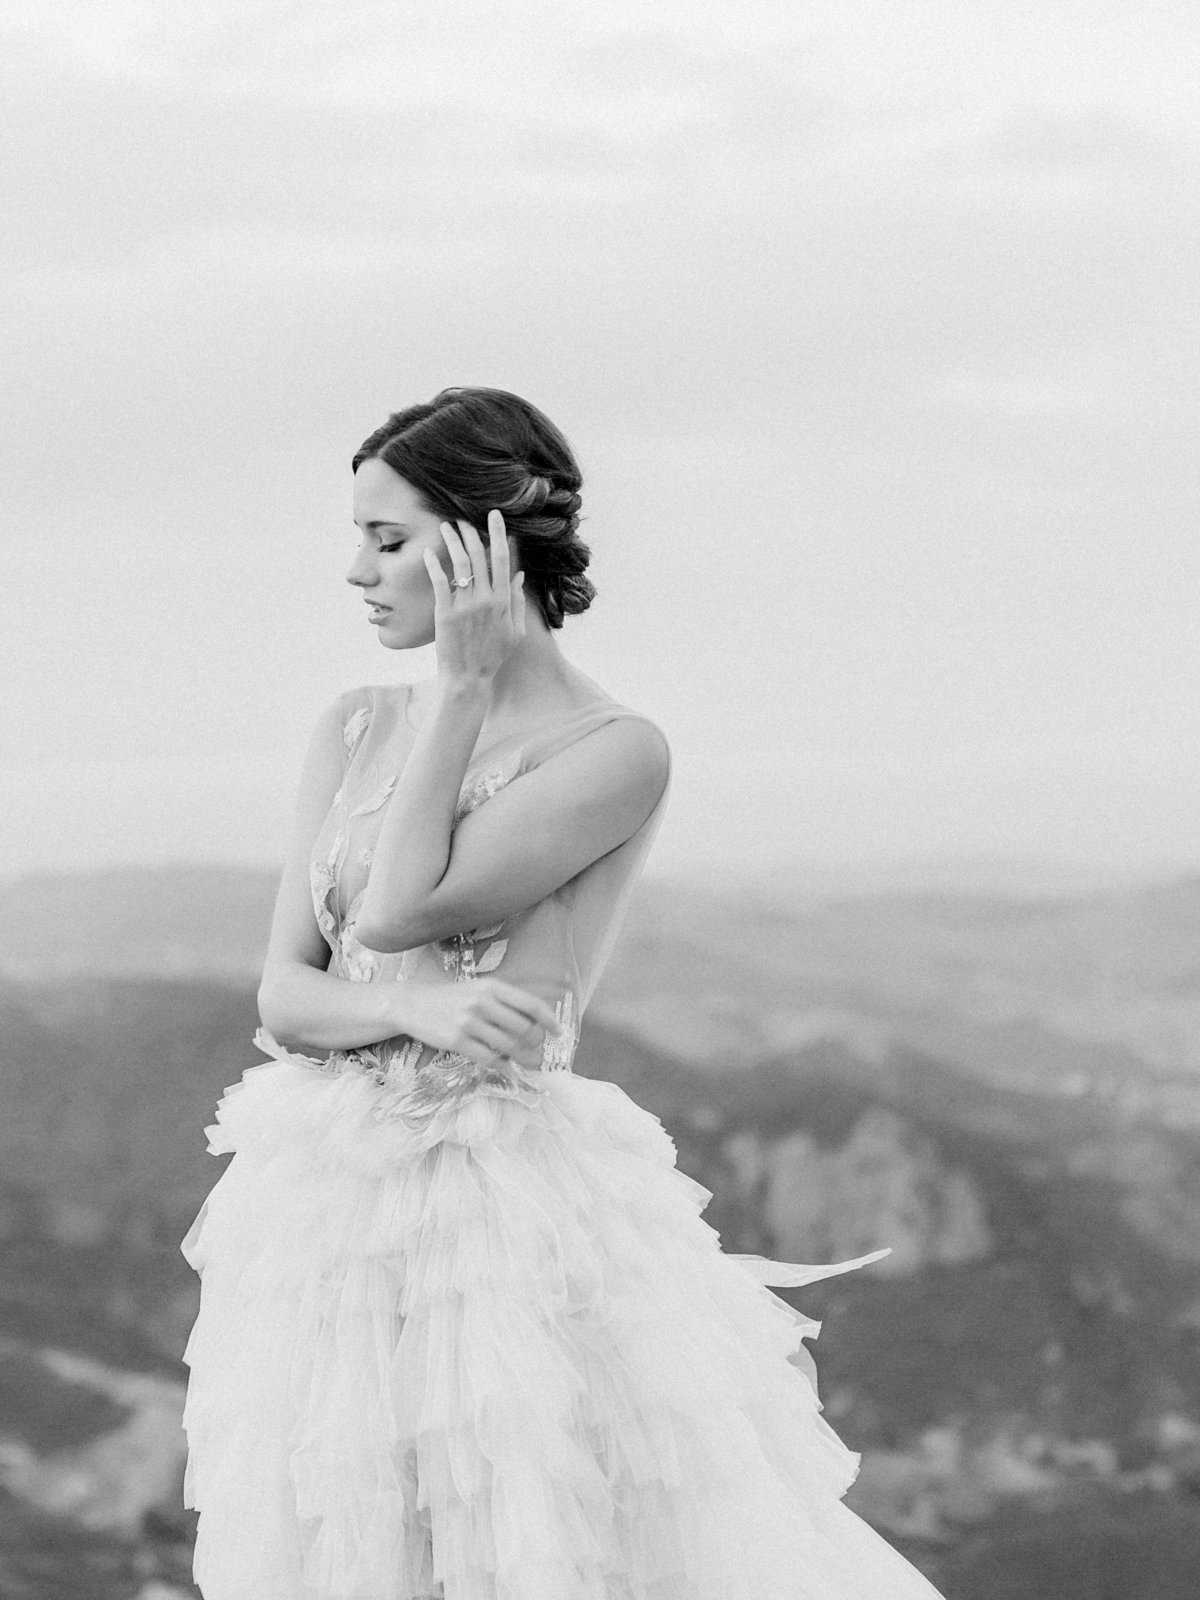 Babsie-Ly-Photography-Fine-Art-Film-Wedding-Photographer-Malibu-Rocky-Oaks-Vineyard-Estate-California-bride-editorial-2018-013